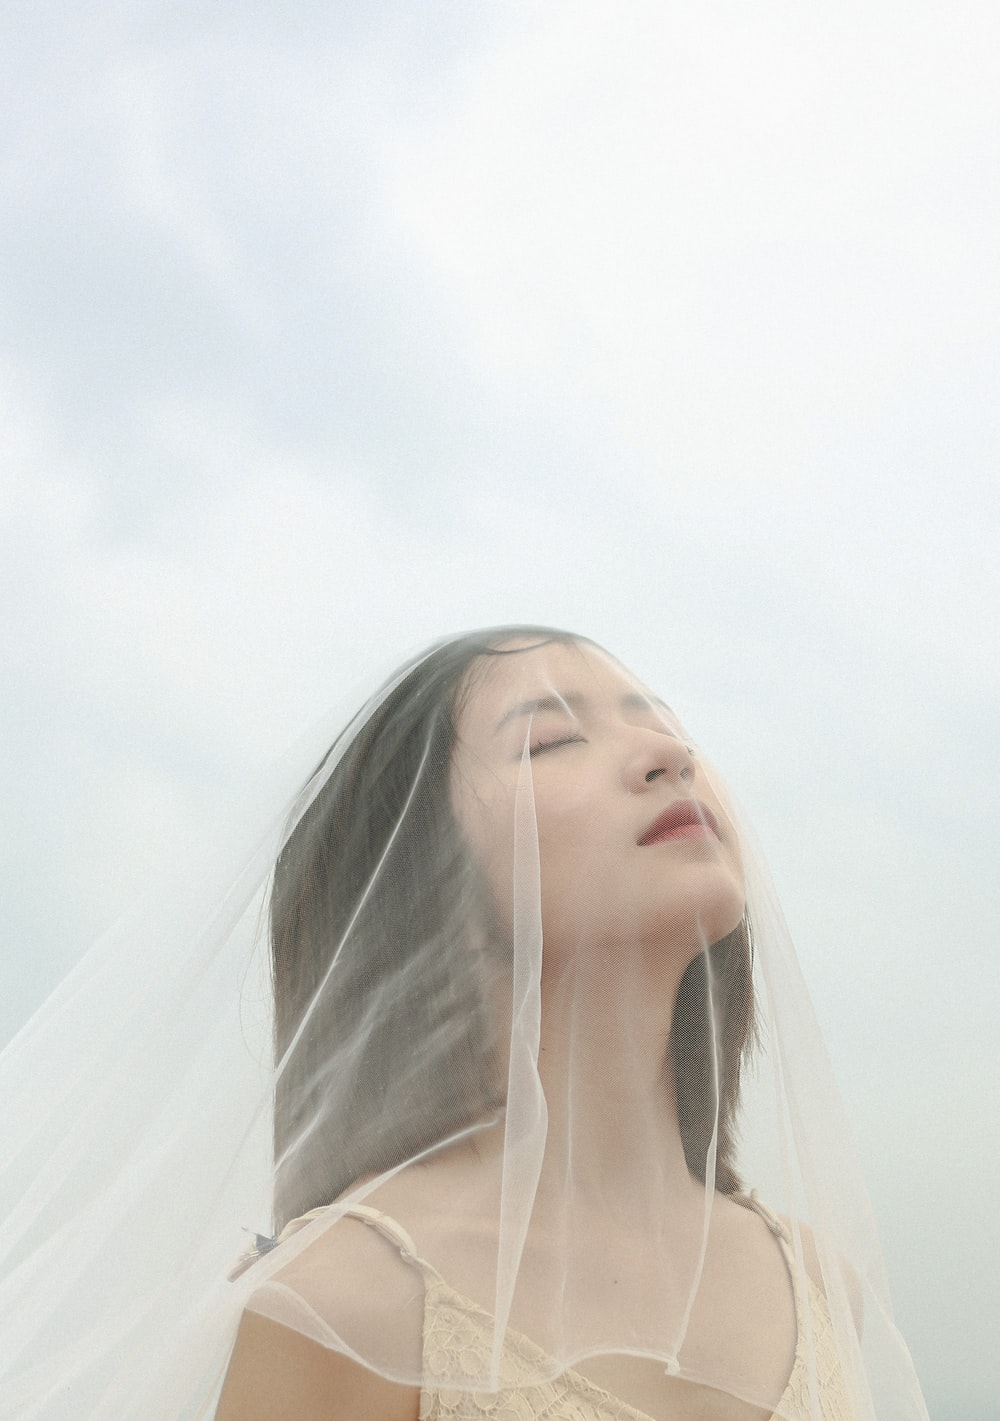 woman wearing veil under cloudy sky